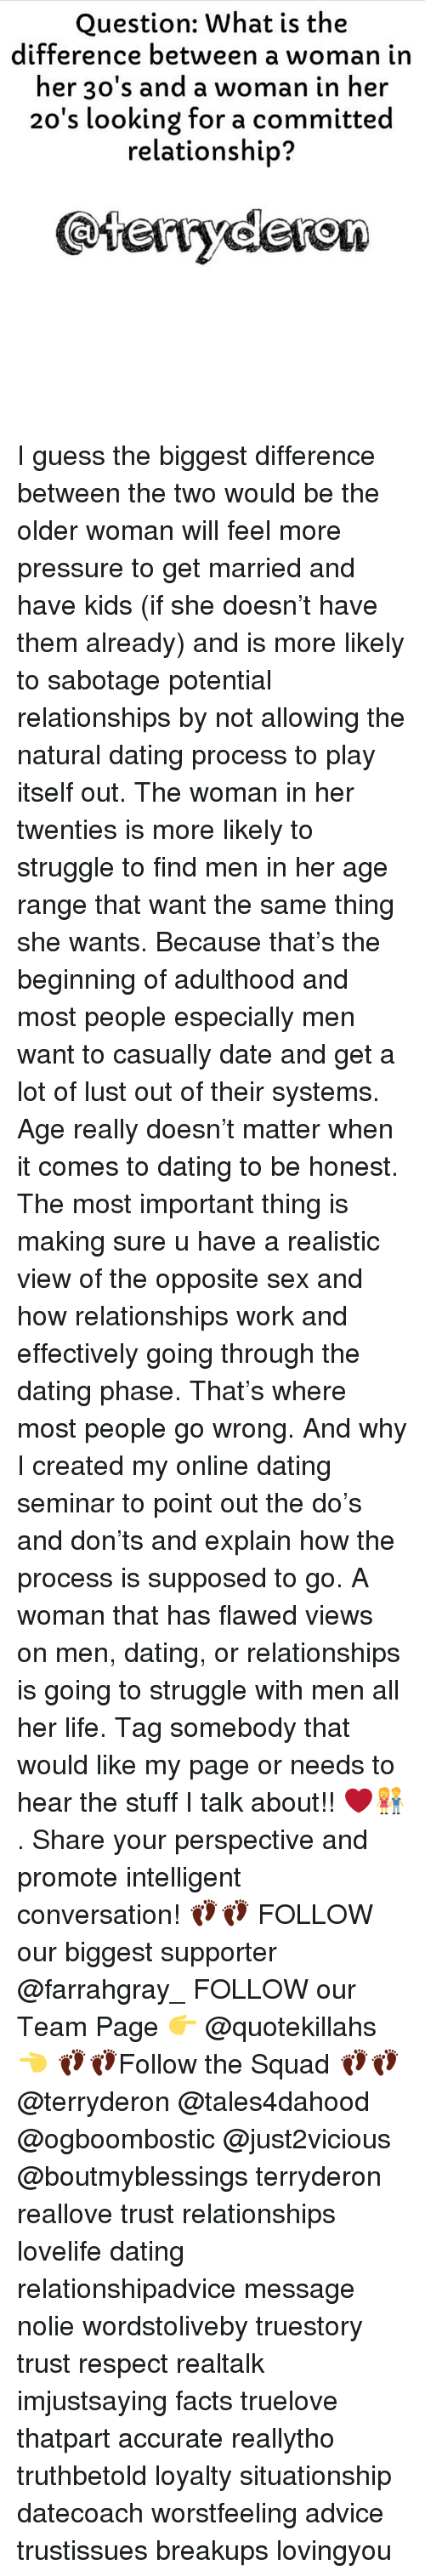 What women like to hear on online dating